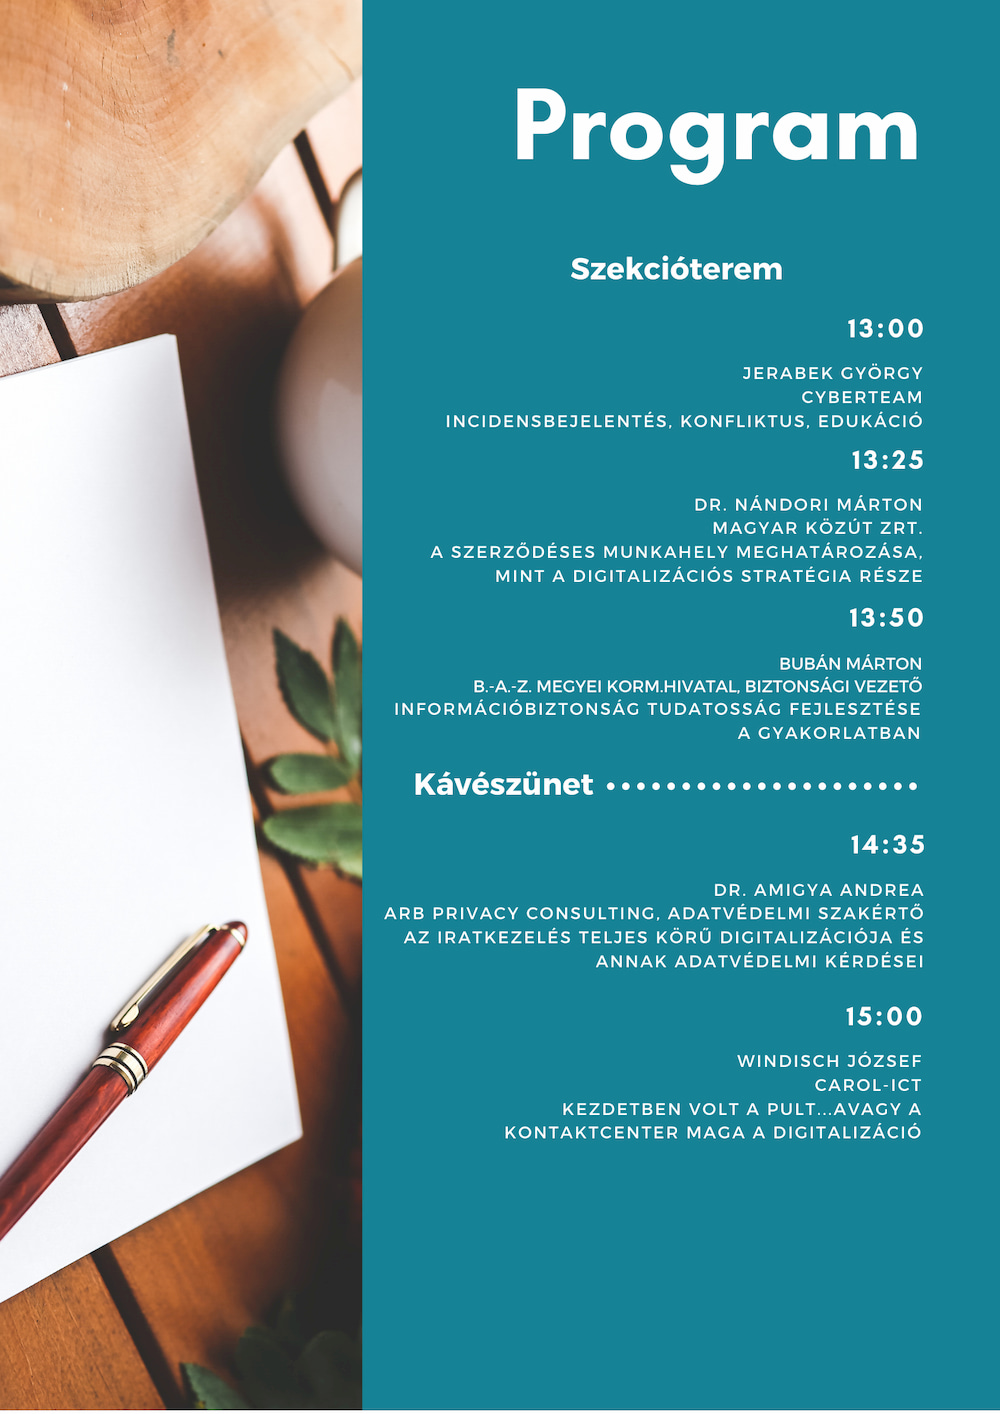 Digitalize now! 2019 - Program - Szekcióterem